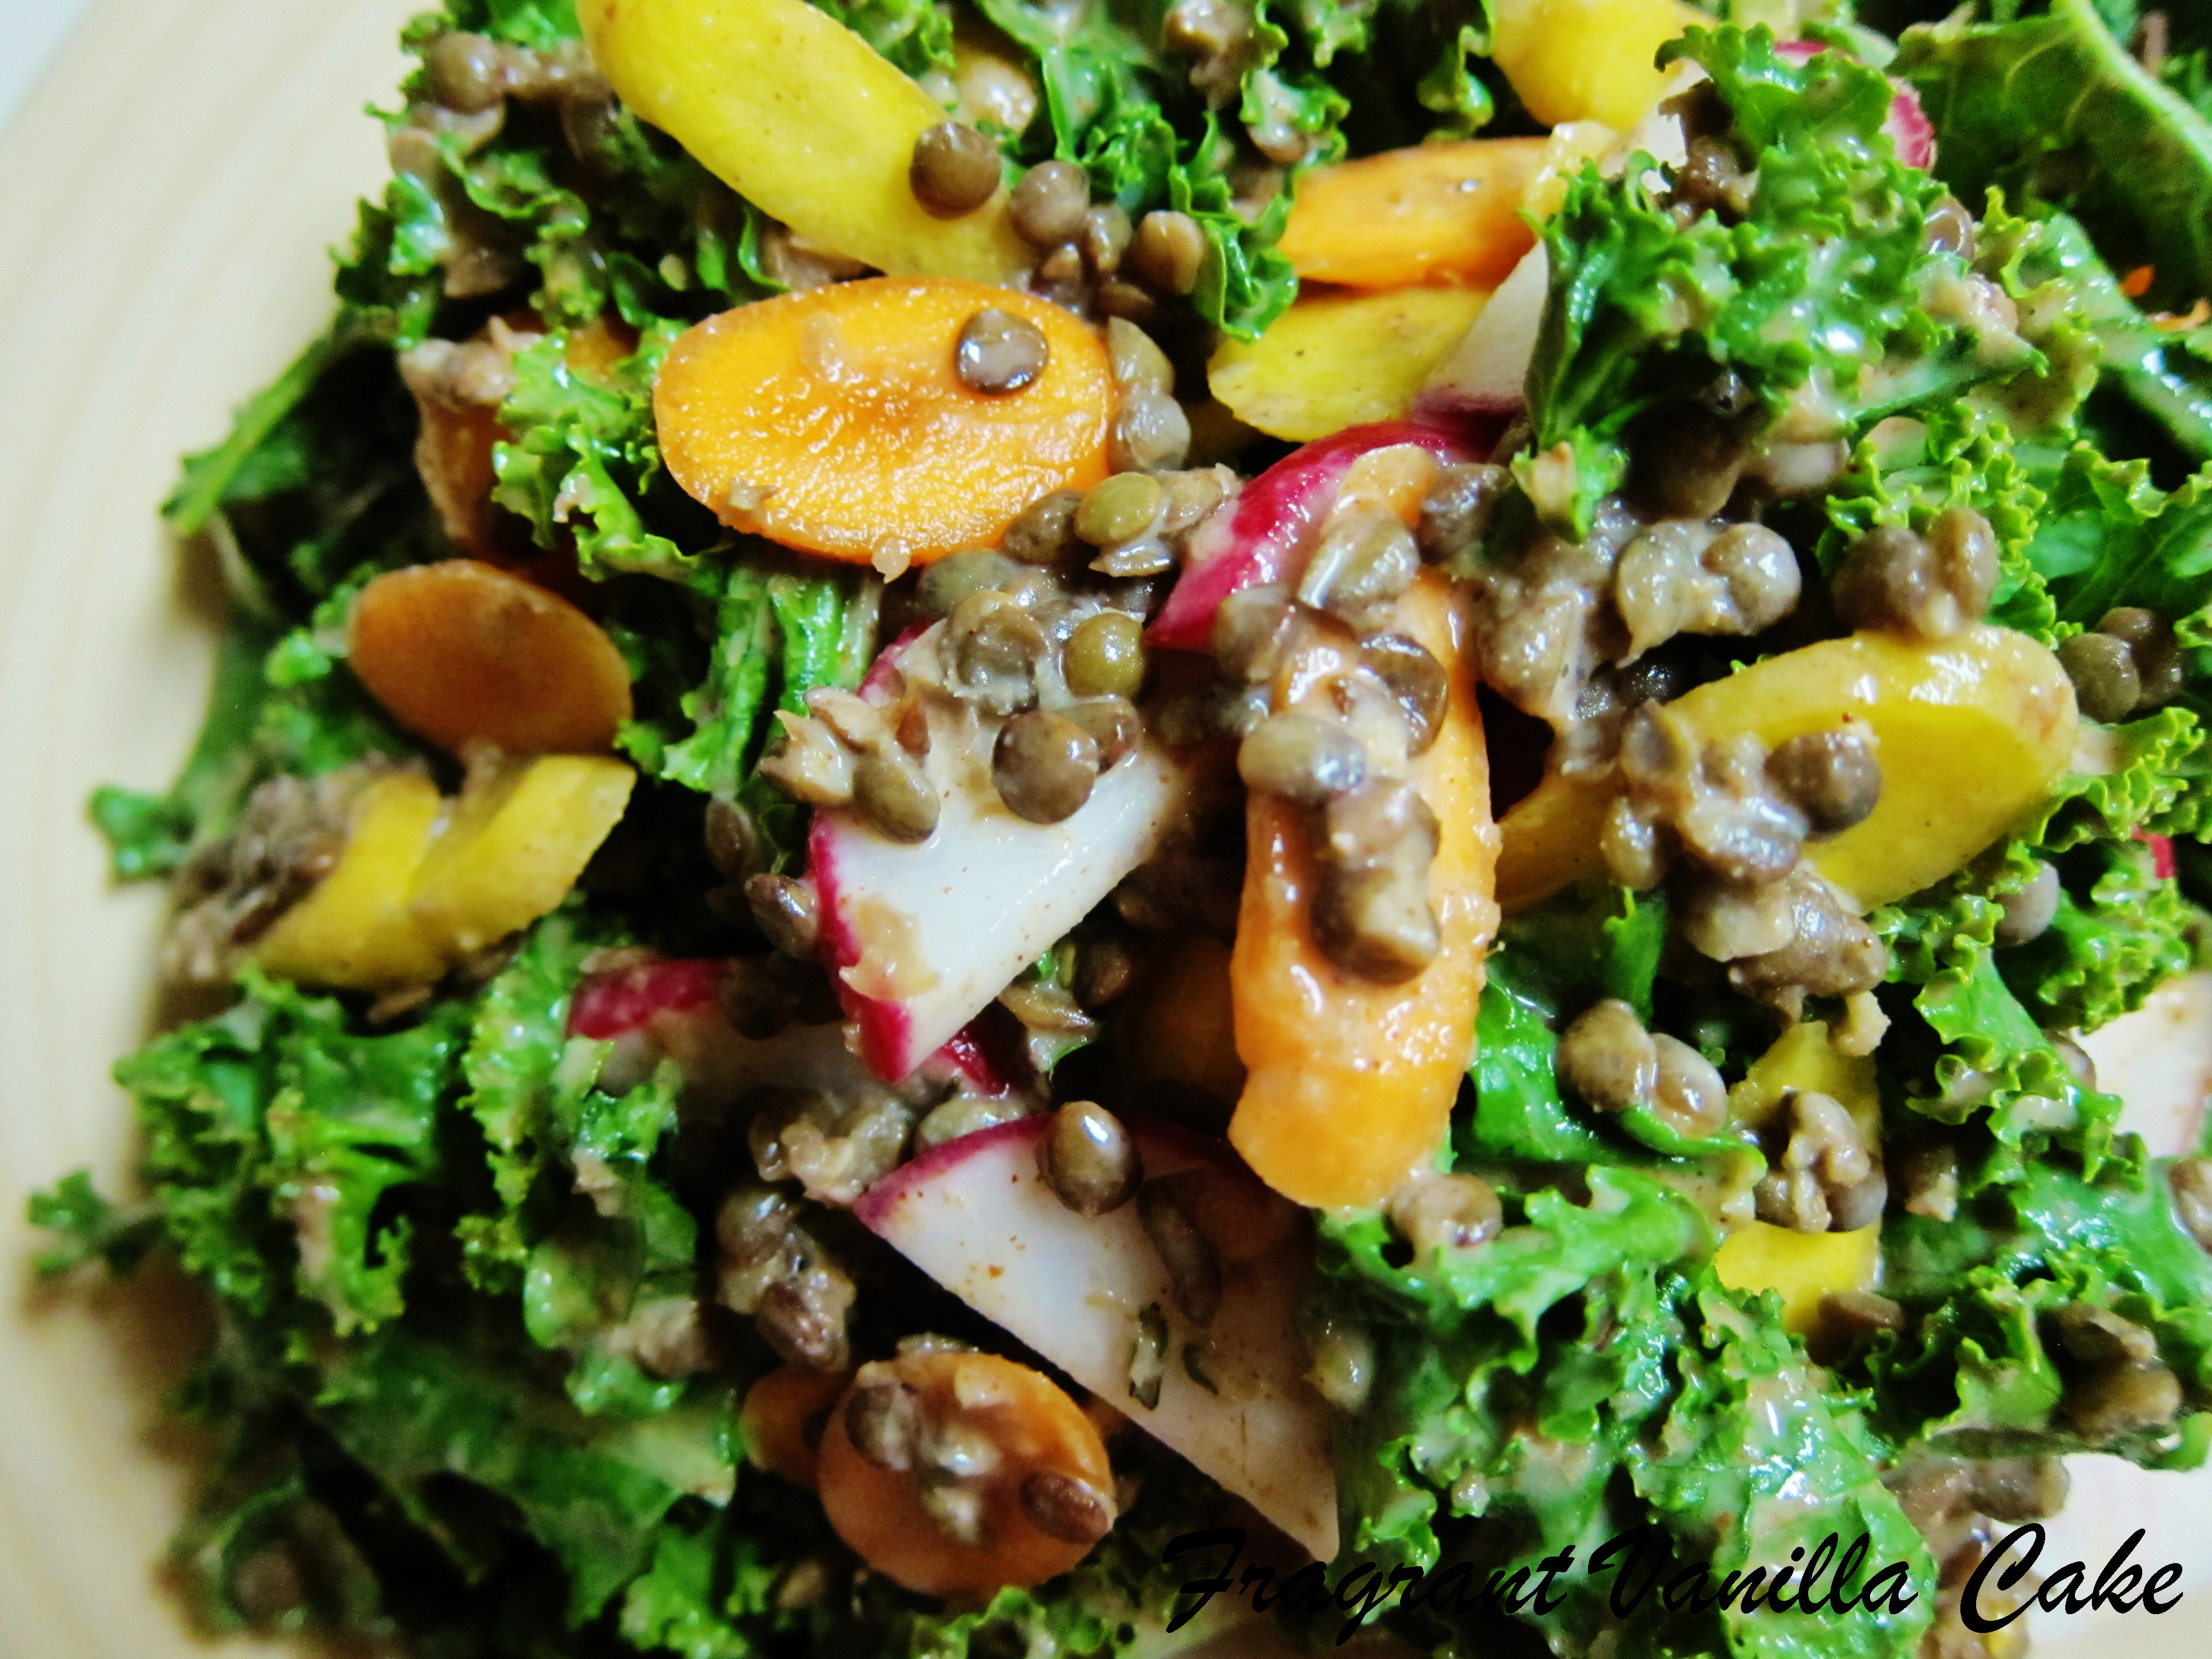 French Lentil and Kale Salad with Almond Dressing